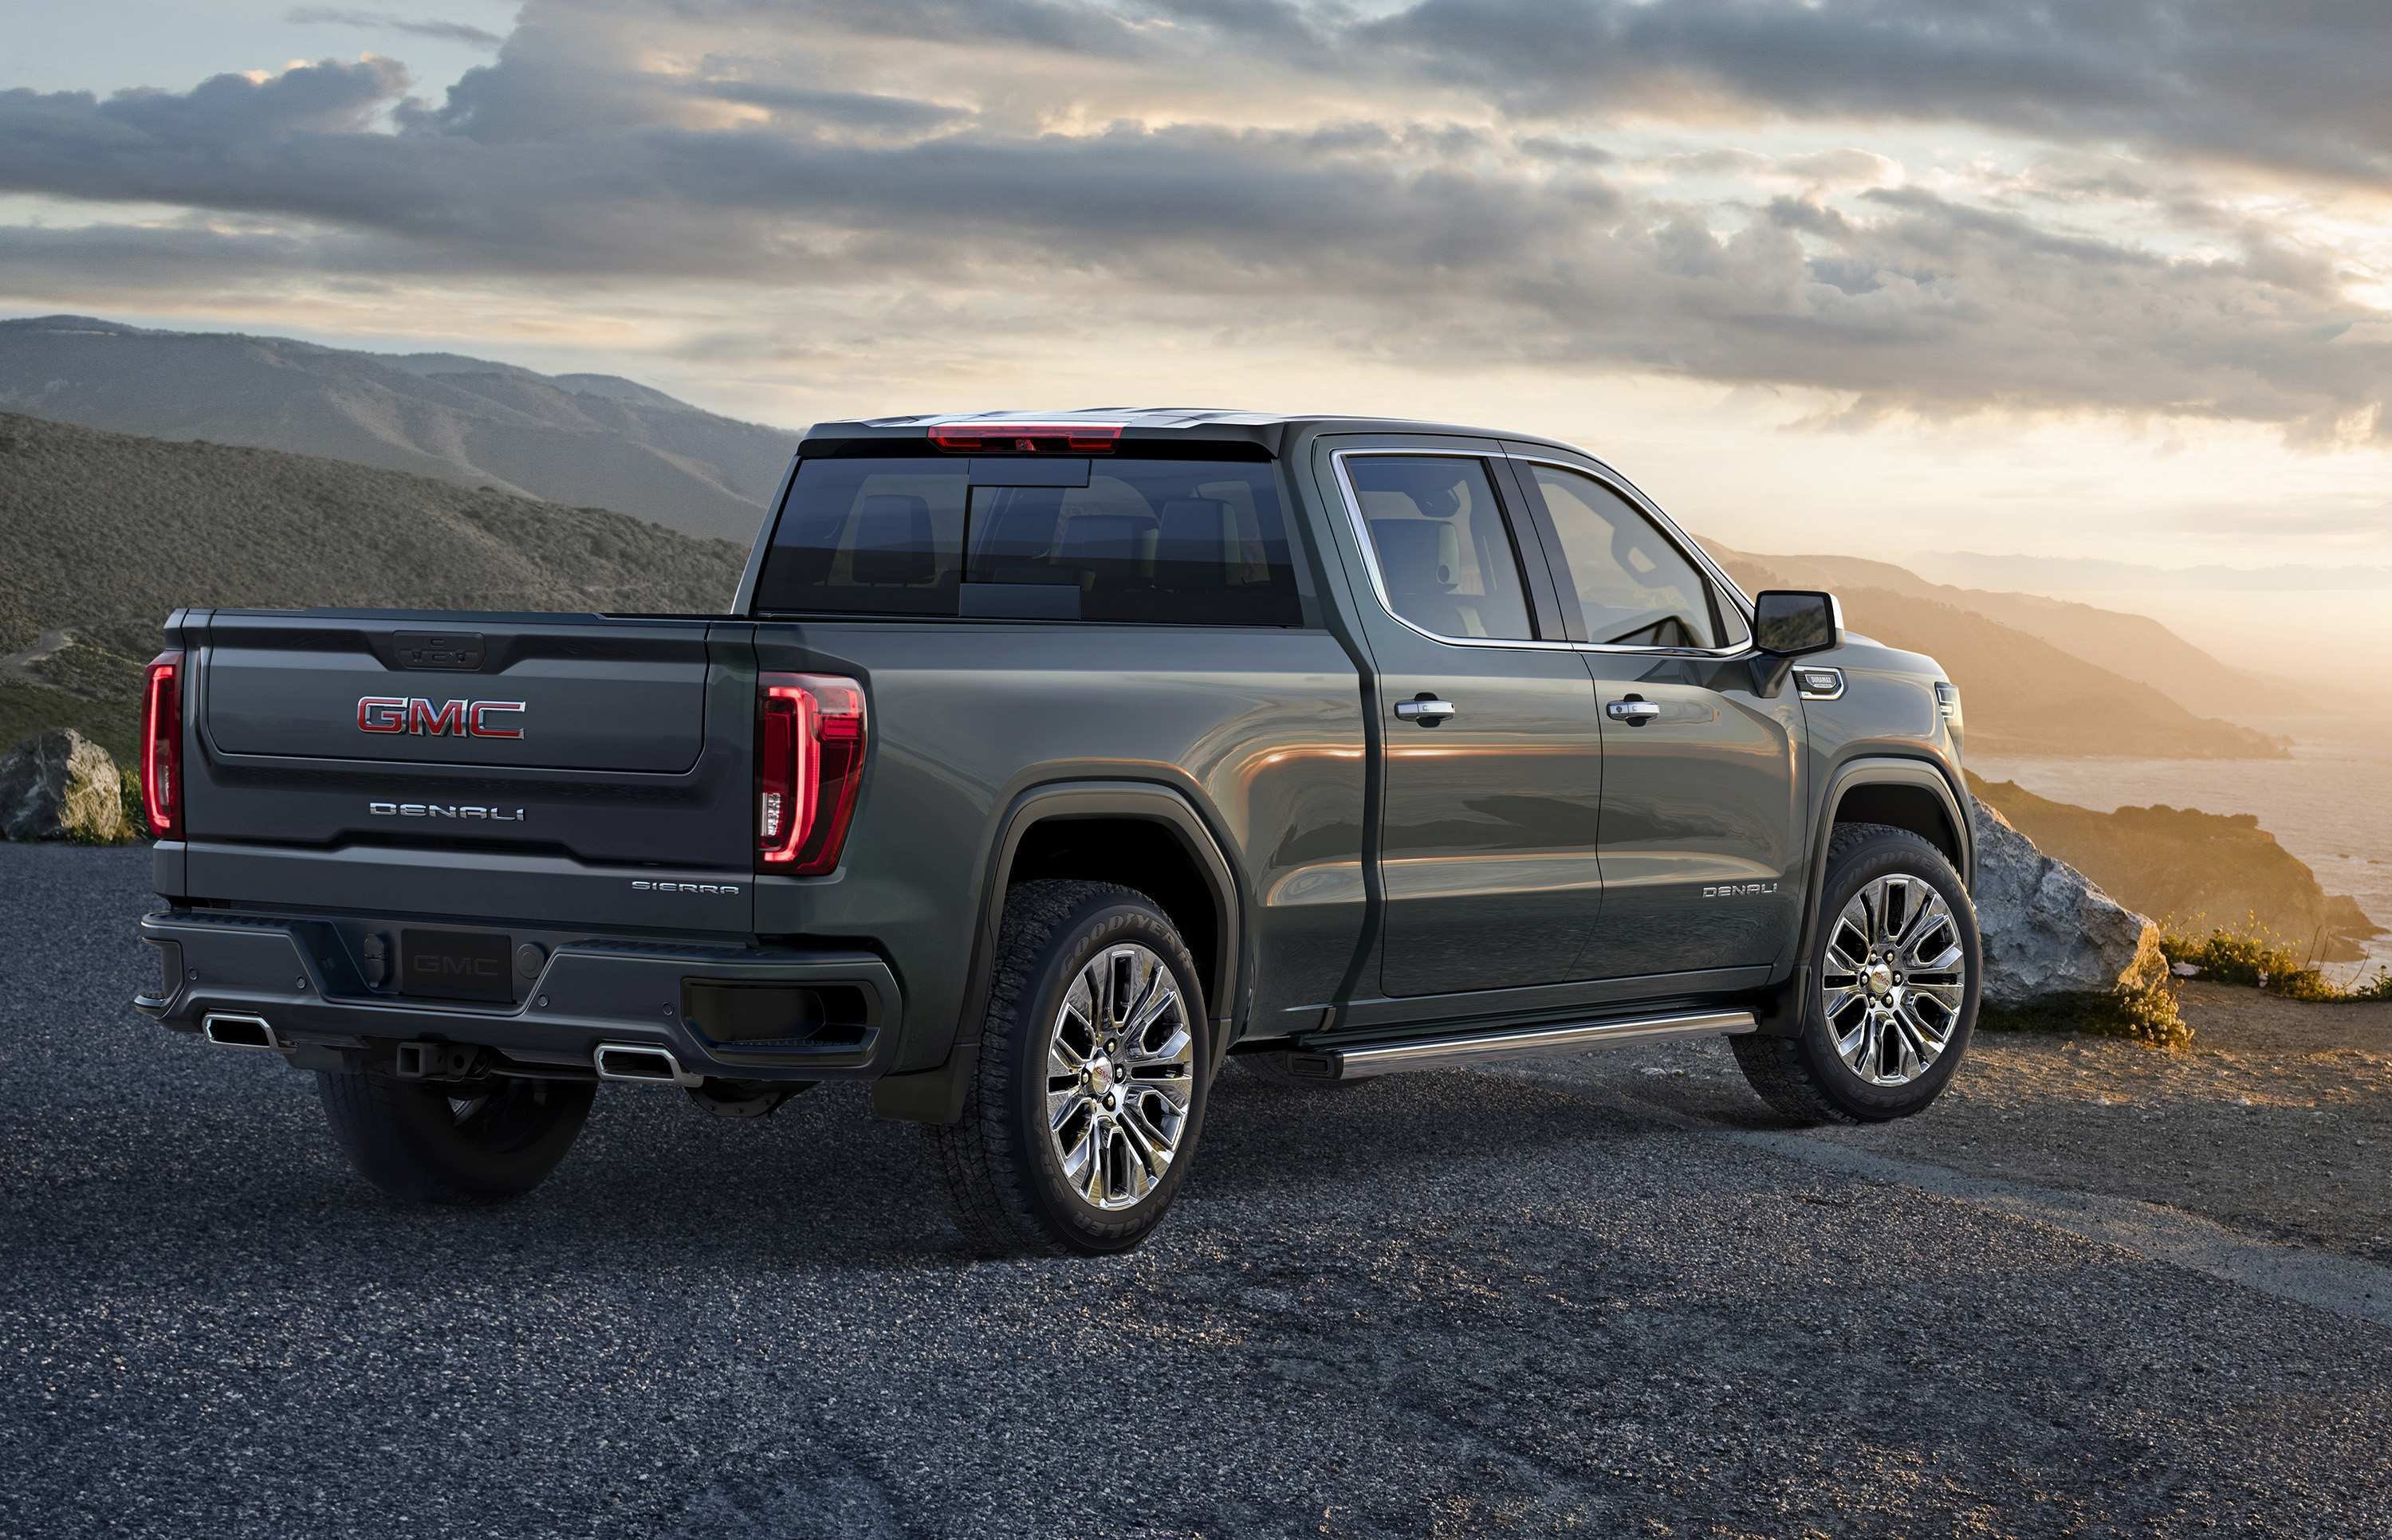 40 The New Gmc Sierra 2019 Weight Redesign And Price Review with New Gmc Sierra 2019 Weight Redesign And Price